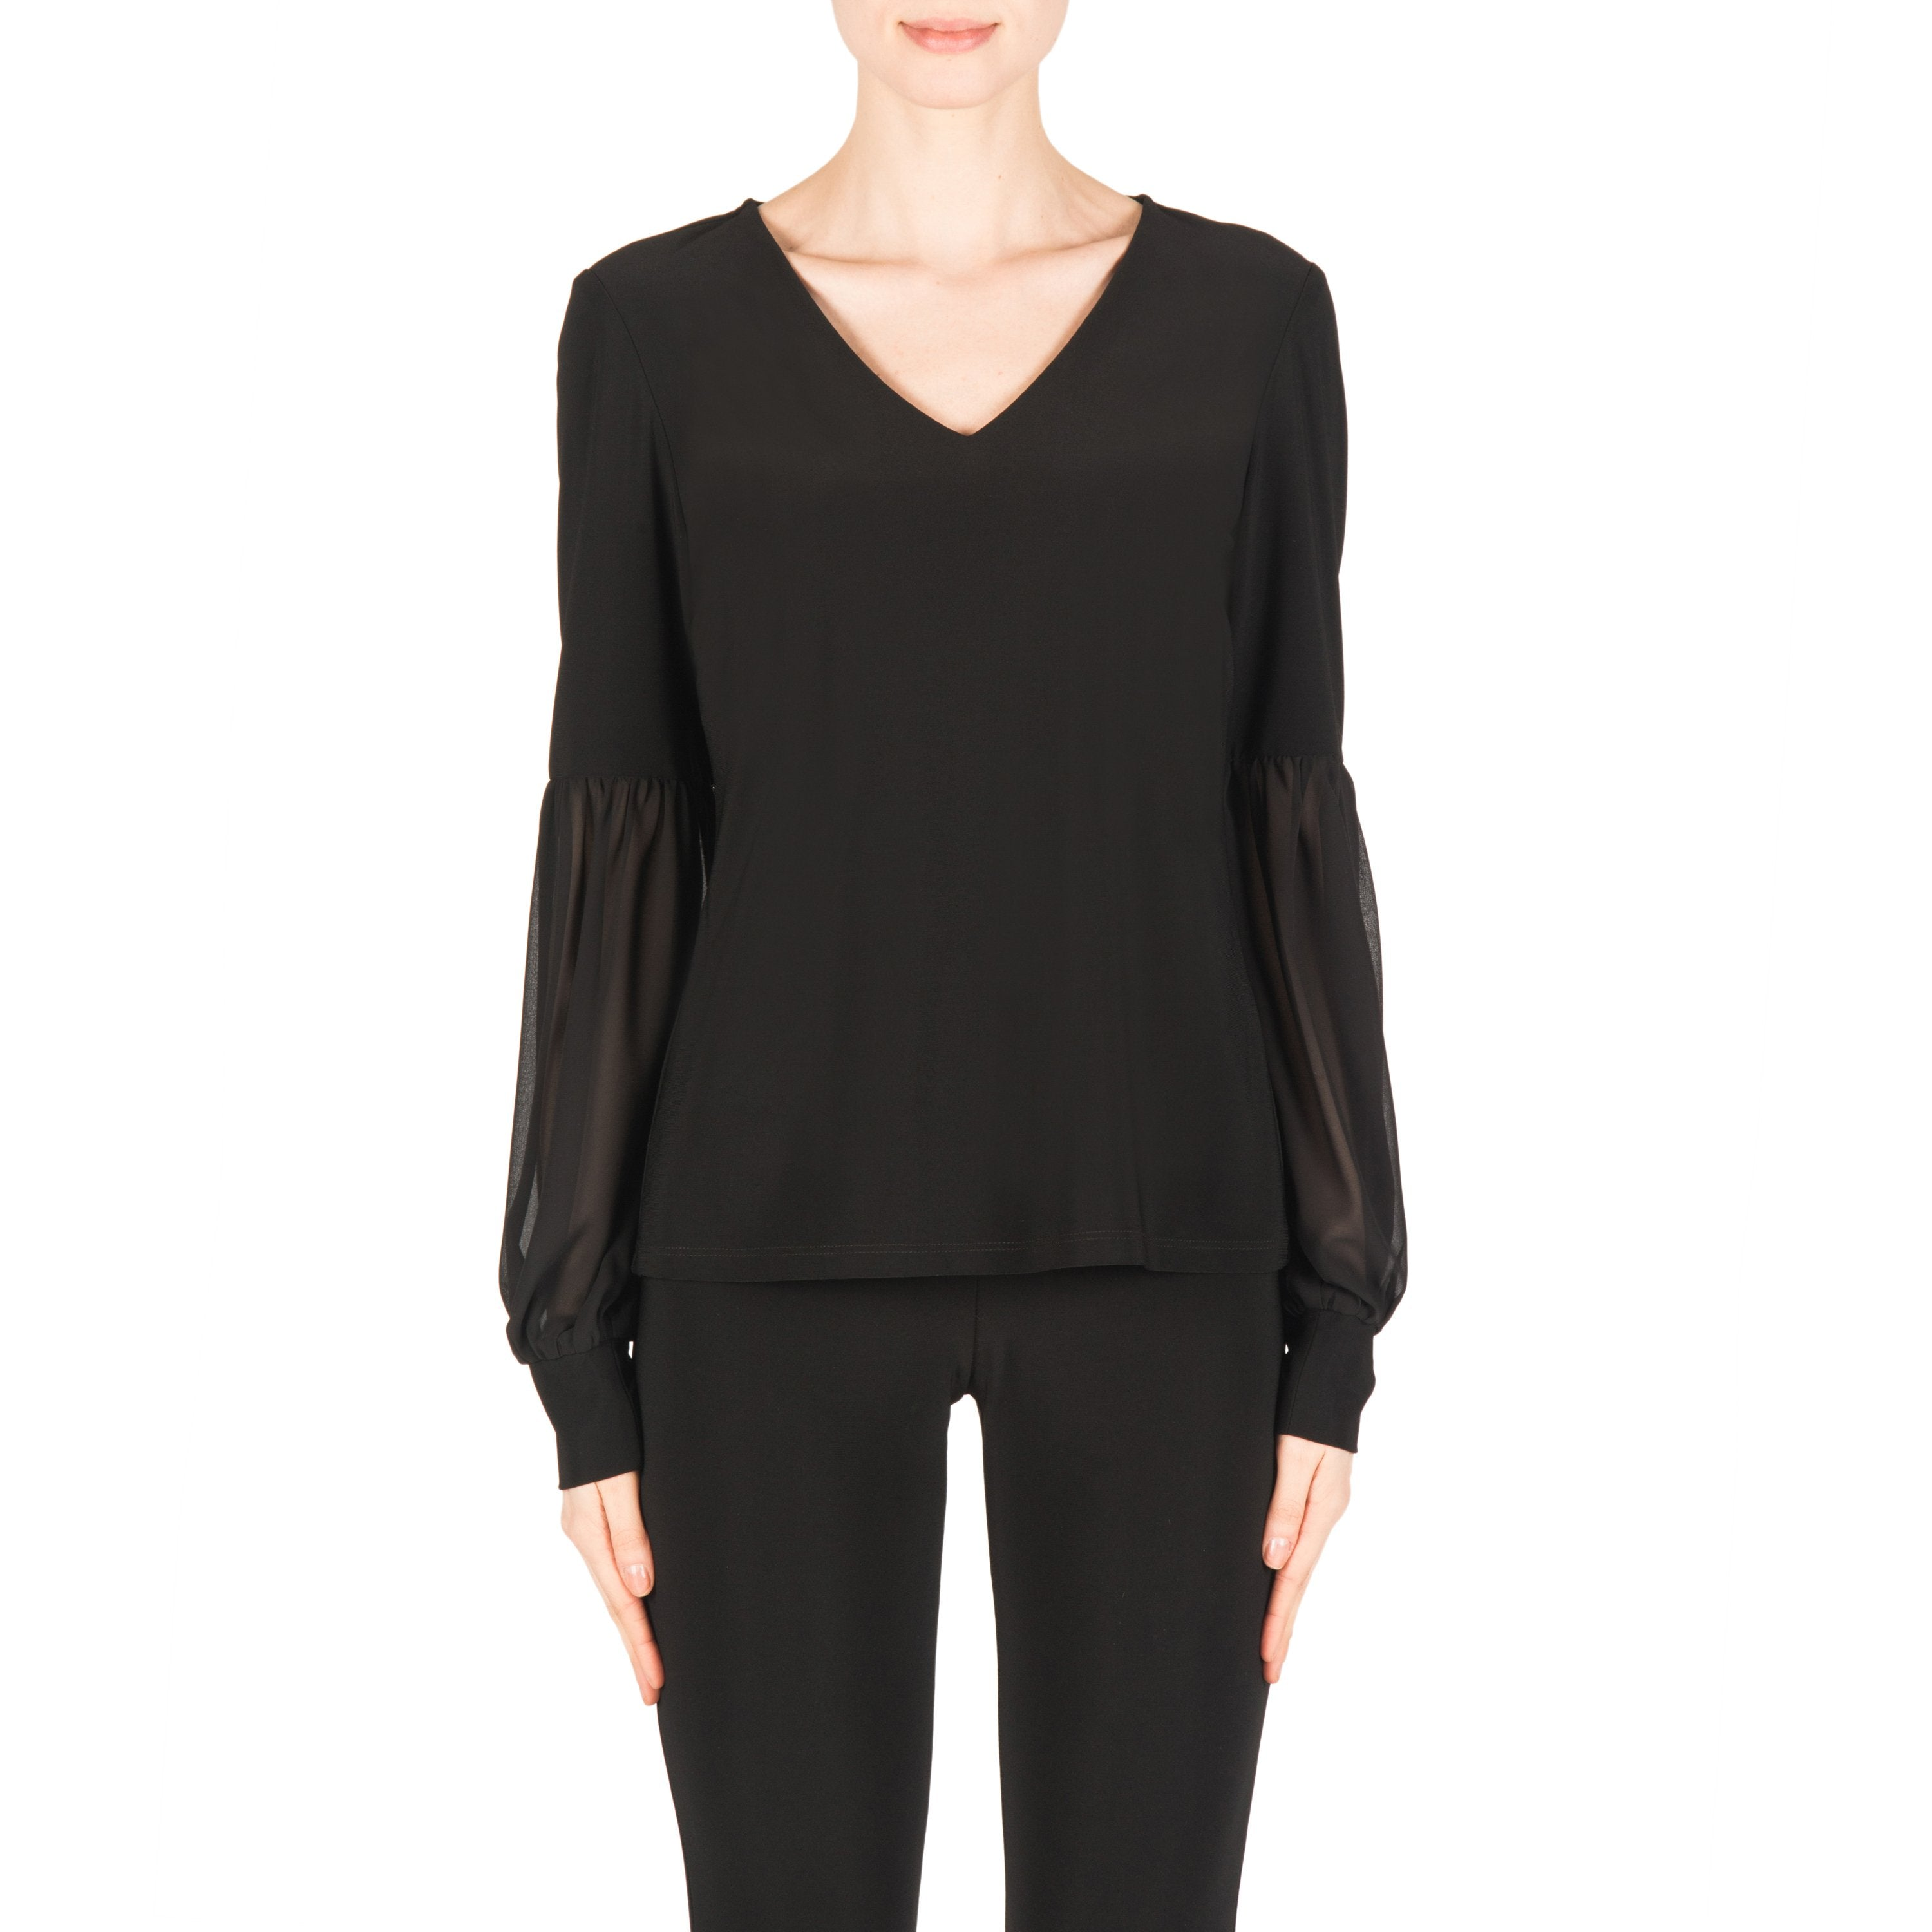 Image of Joseph Ribkoff Top Style 183278 Best Price On Sale